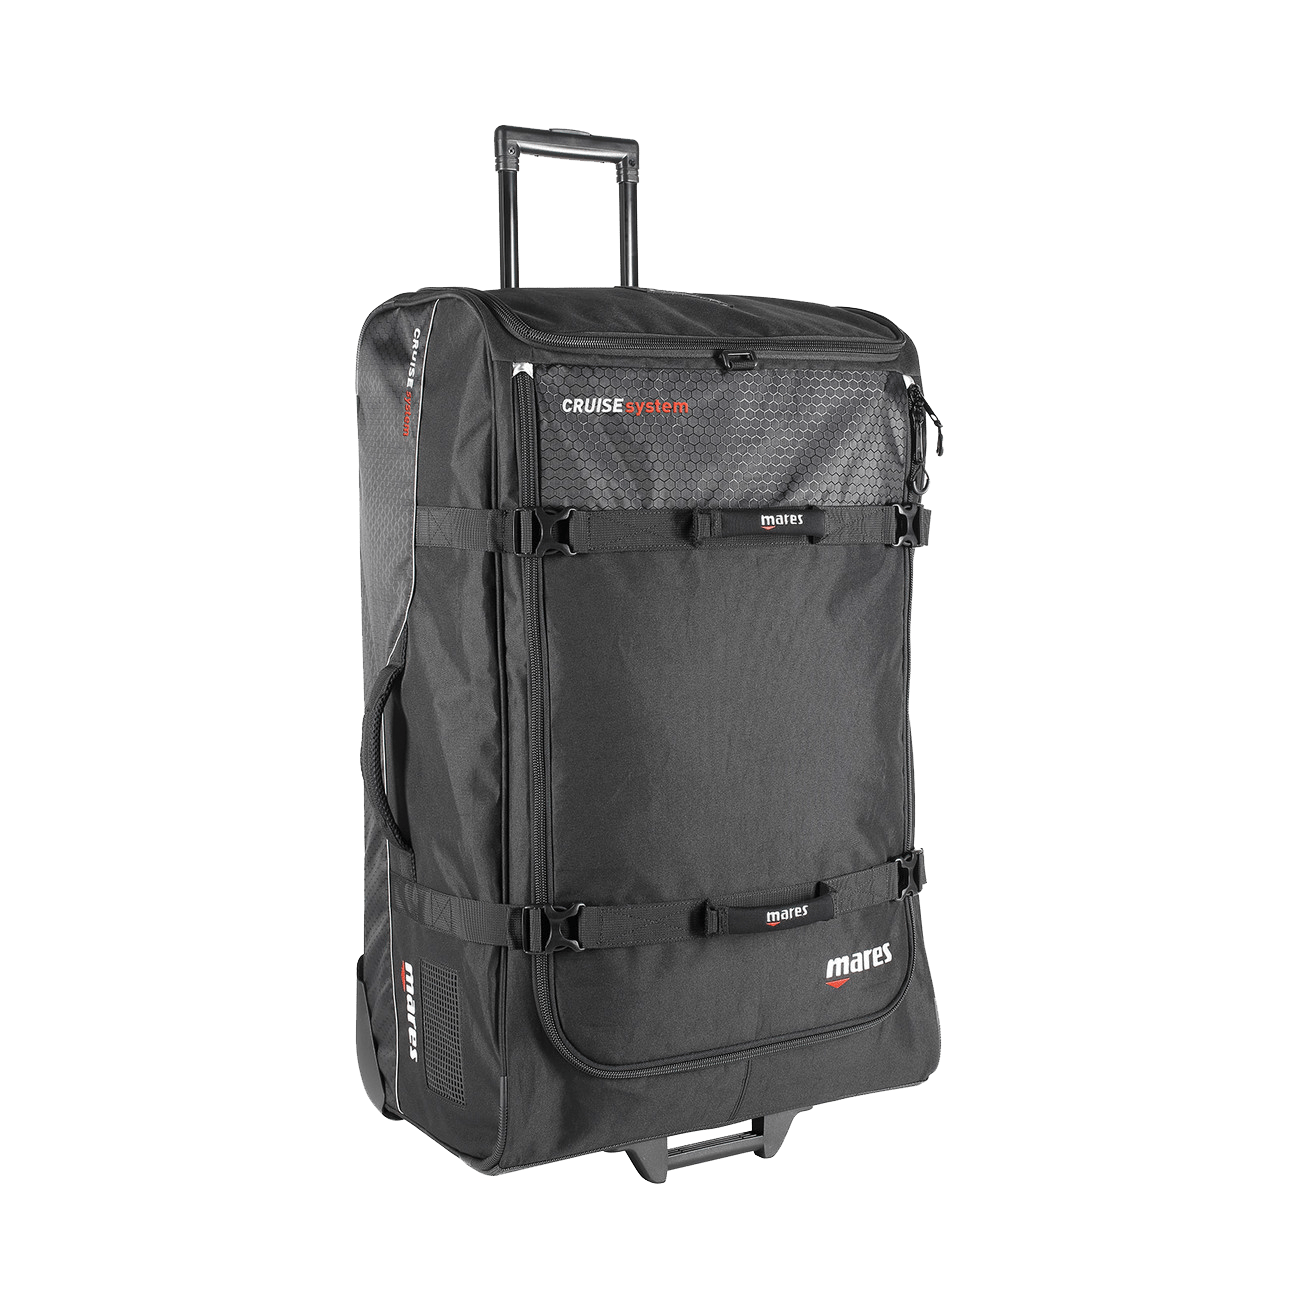 Mares Cruise System Bag | Mares Bags | Mares Singapore